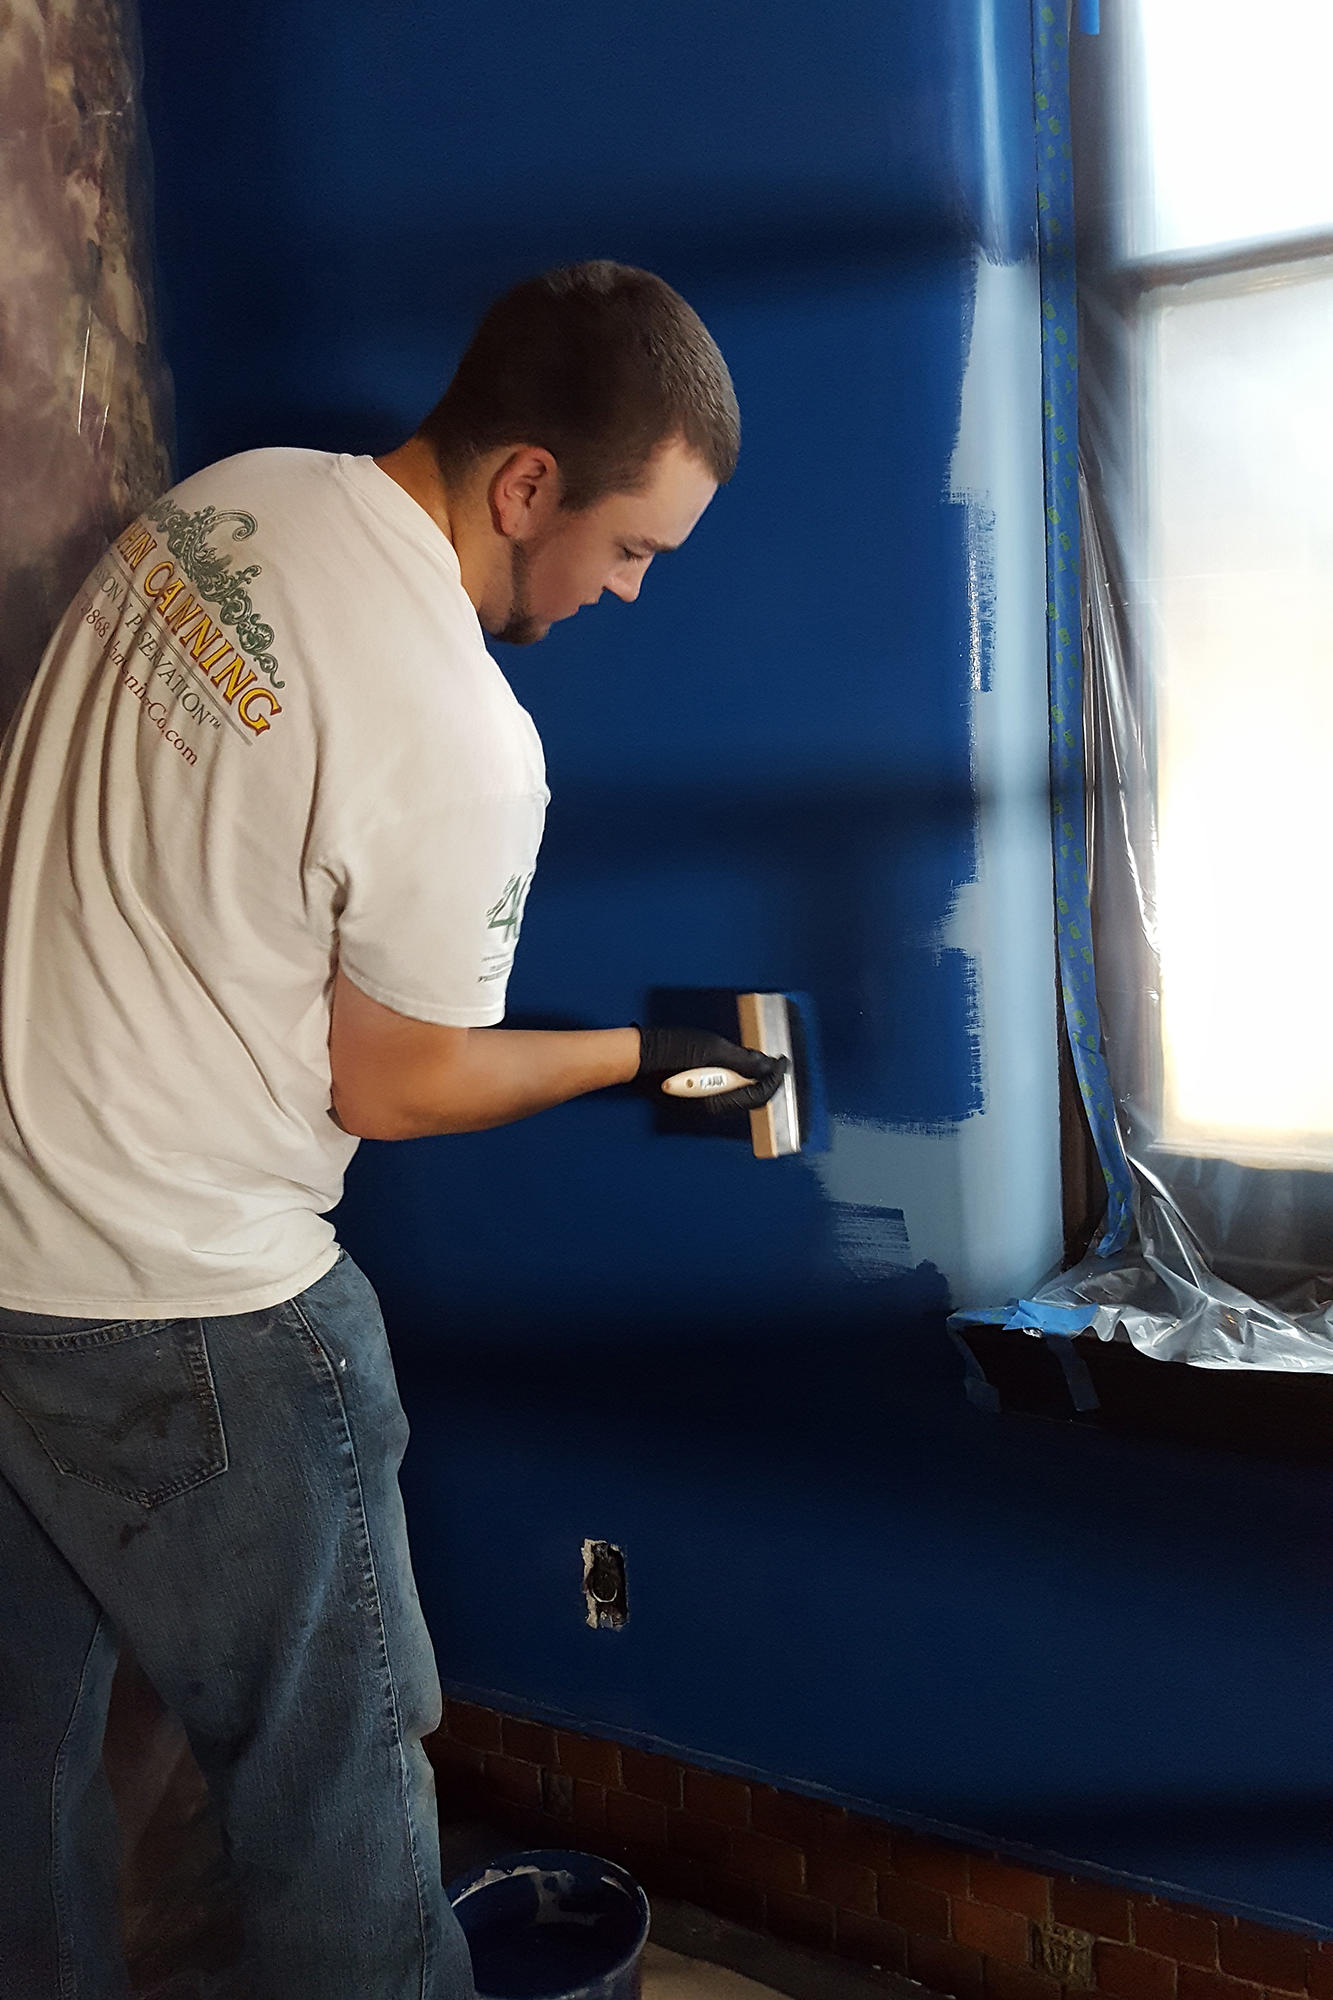 A man painting the walls blue